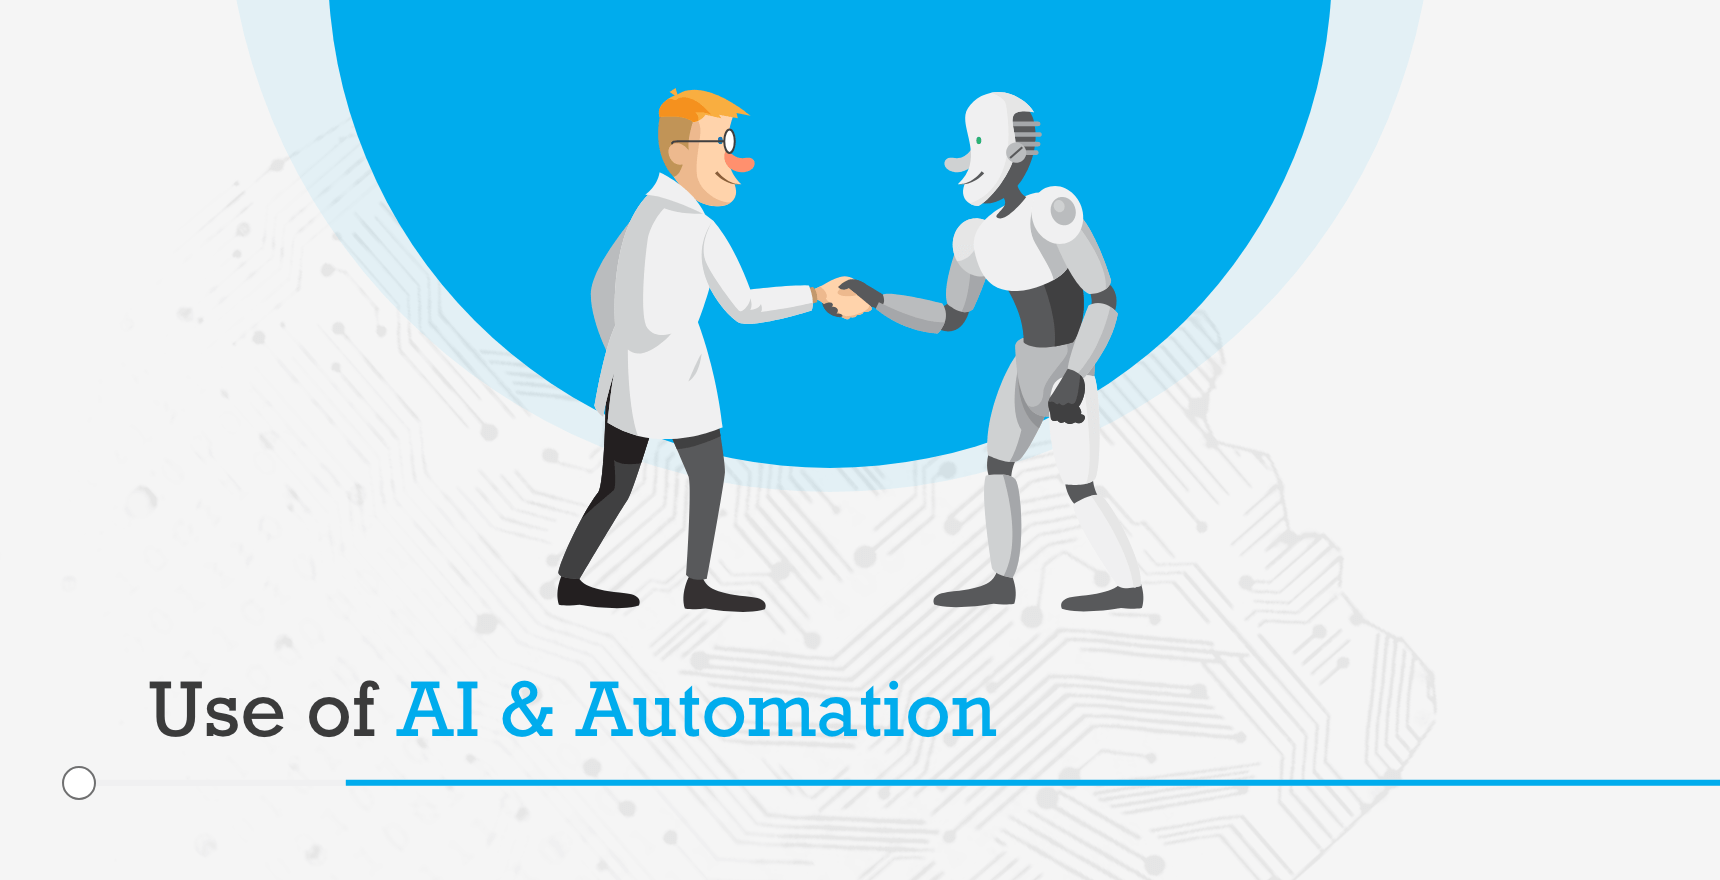 Use of AI and Automation